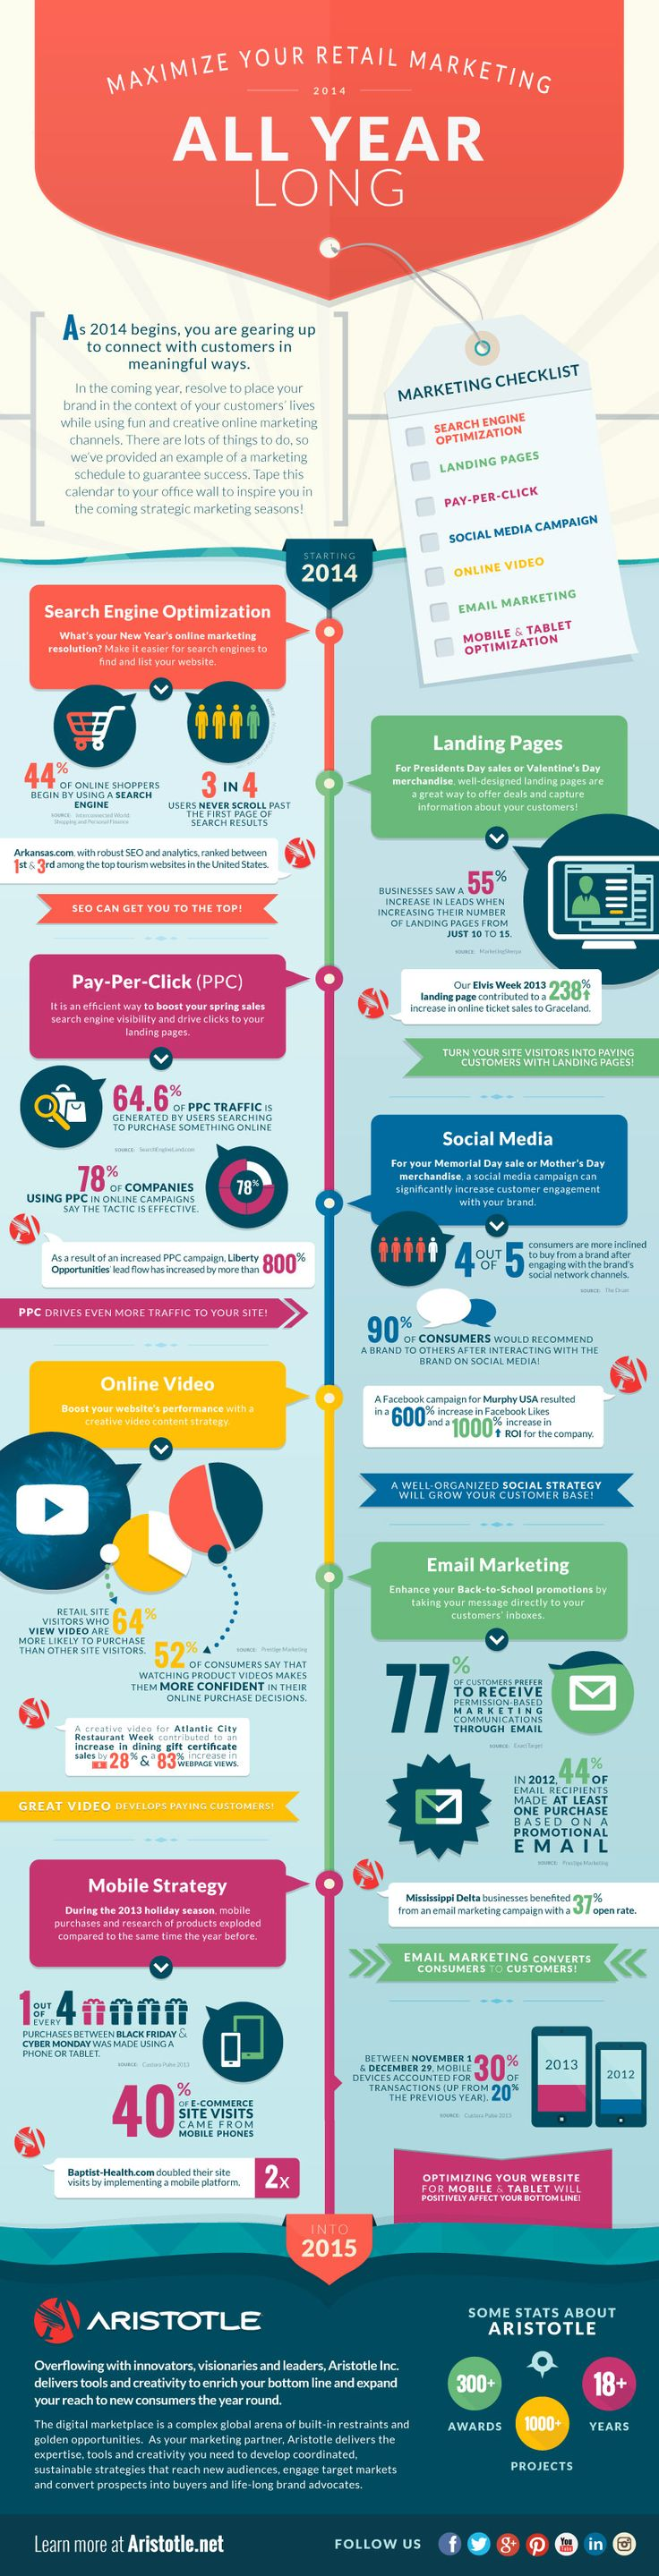 Maximize Your Internet Marketing Campaigns All Year - Infographic